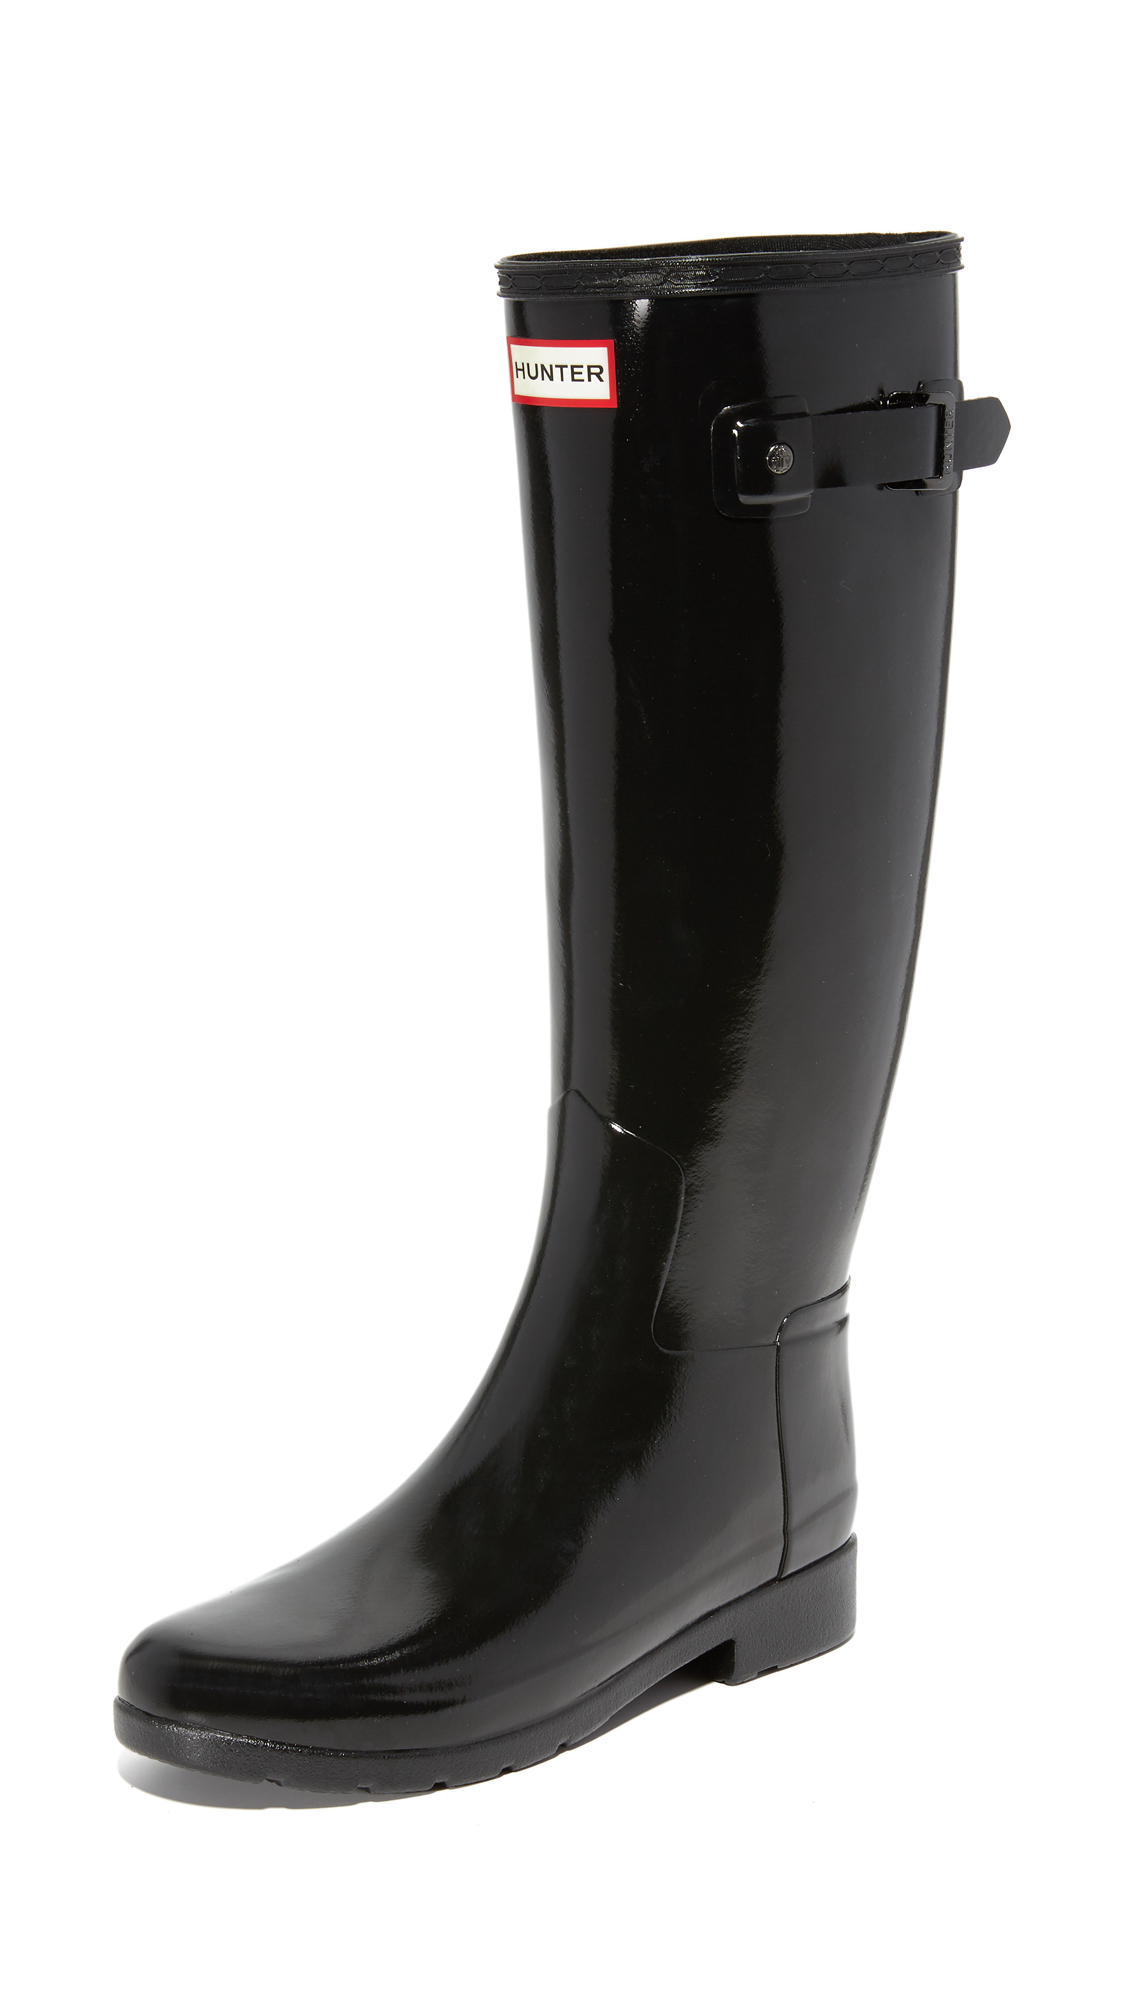 Hunter Boots Original Refined Gloss Boots - Black at Shopbop